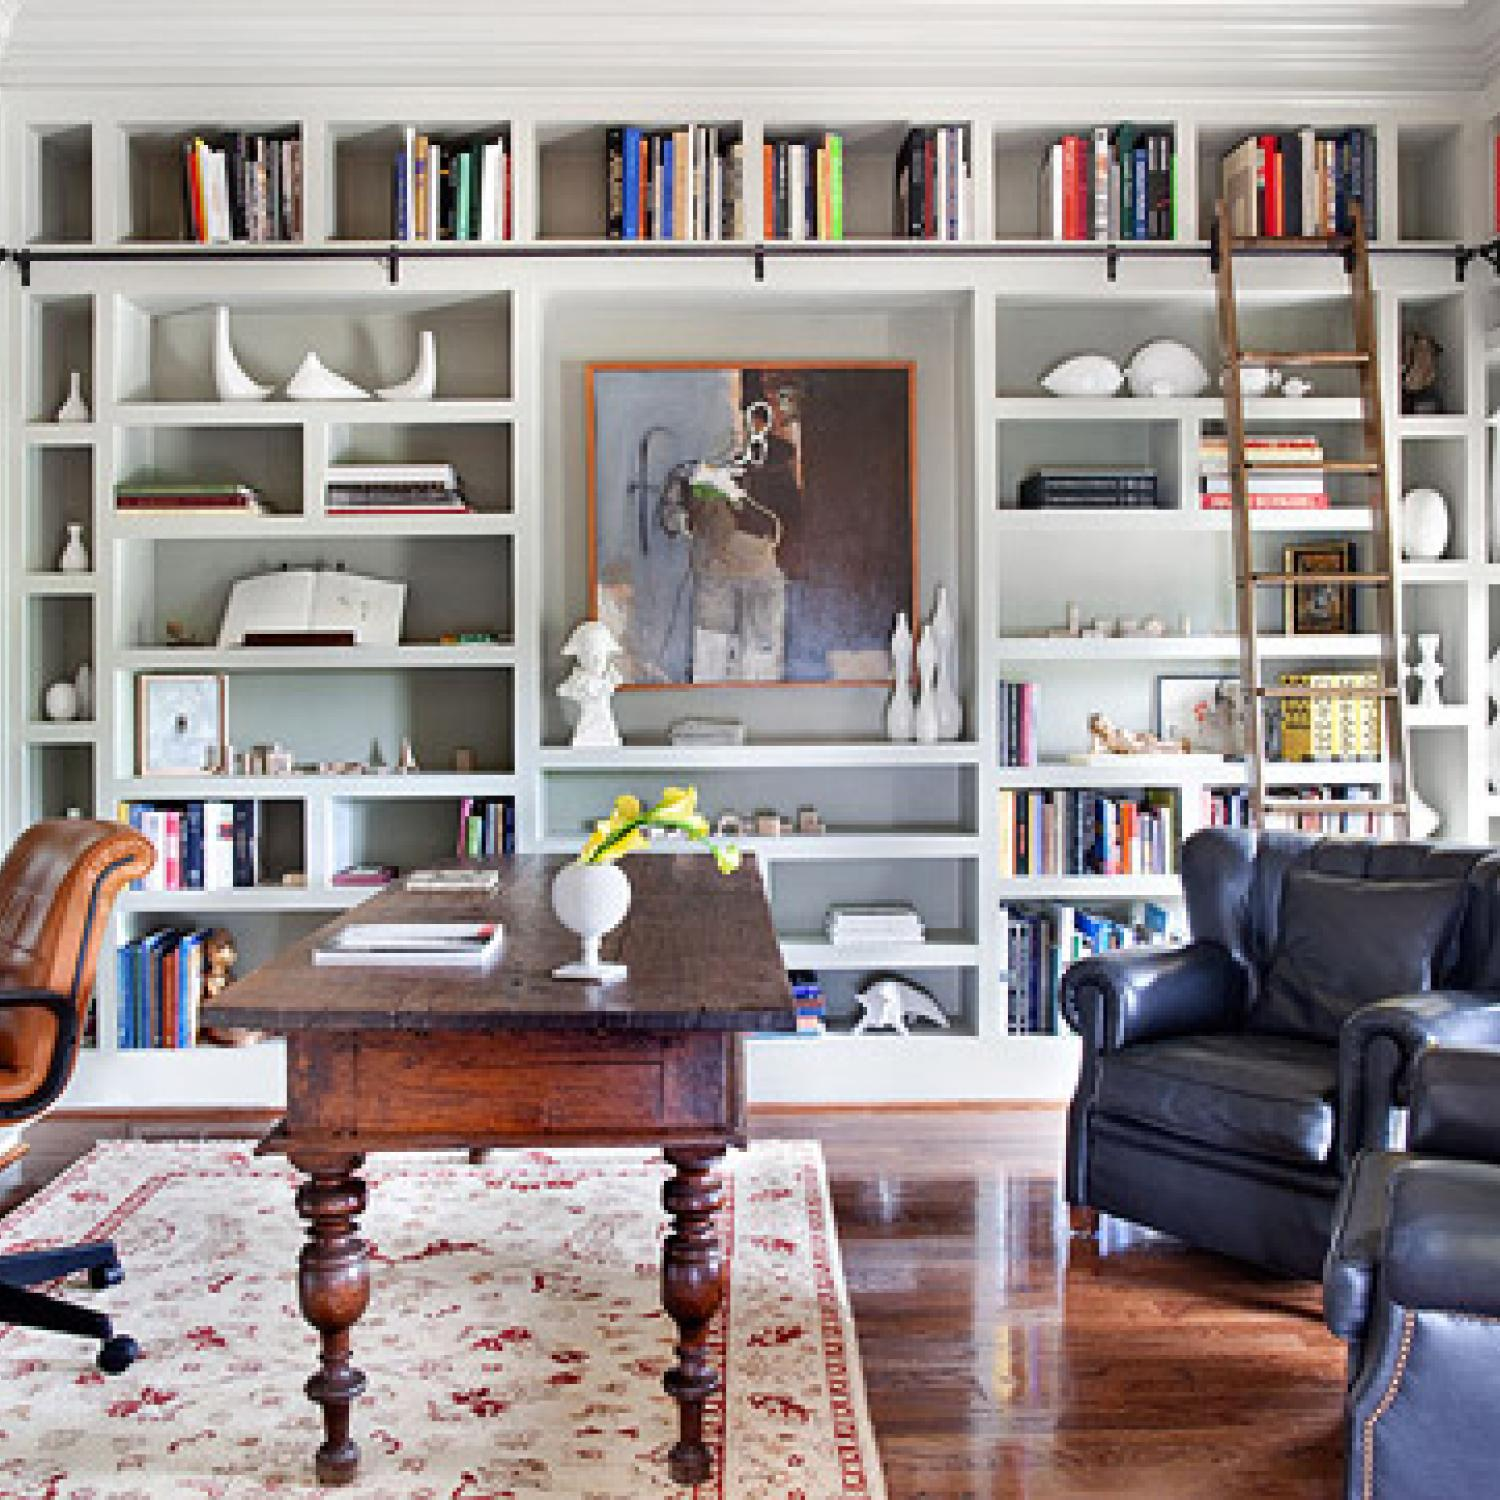 28 Dreamy Home Offices With Libraries For Creative Inspiration: Sophisticated Office Spaces